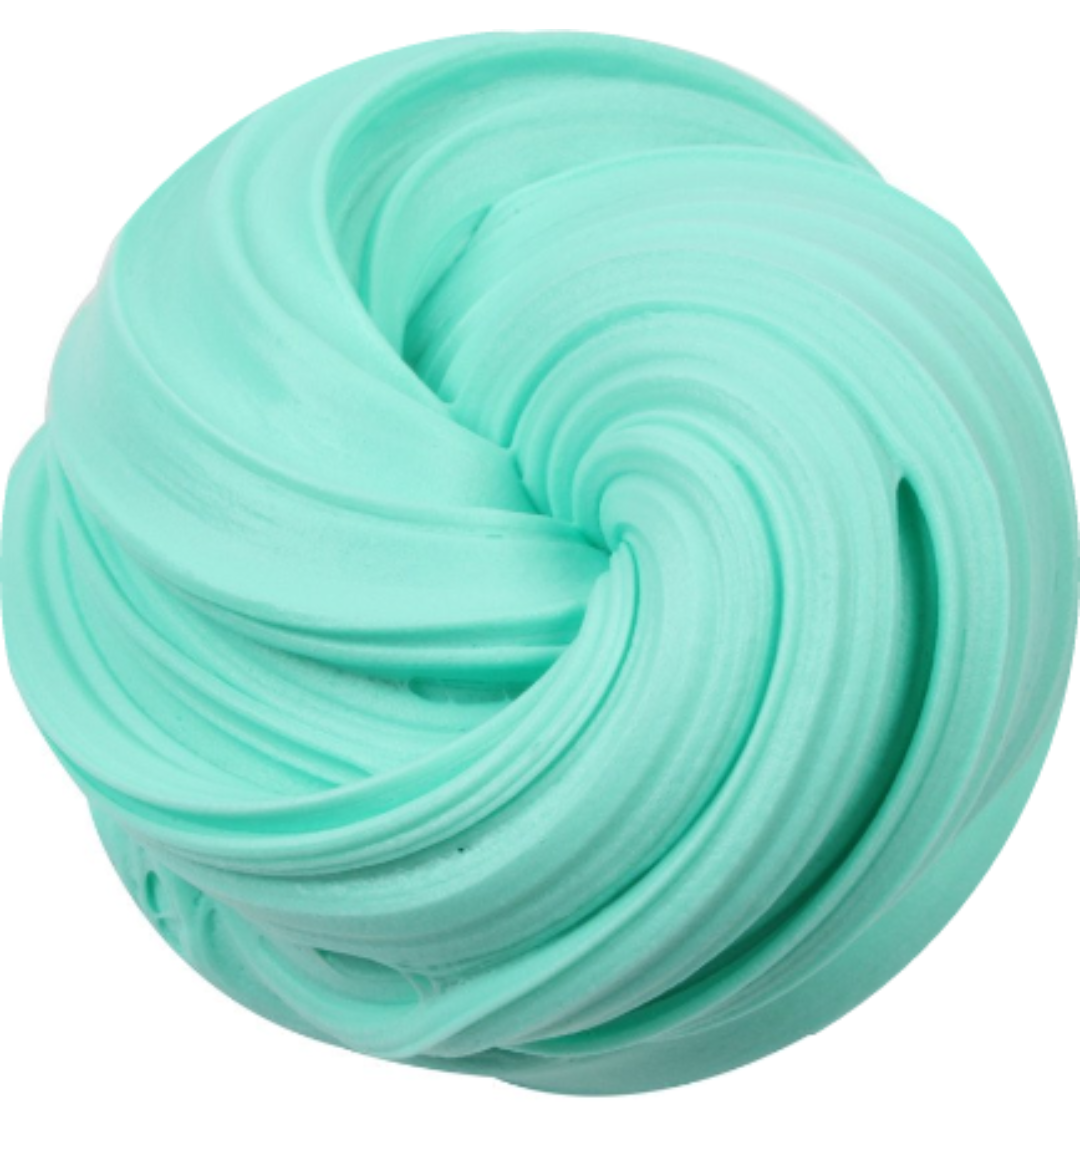 Green Butter Clay Slime UK Seller 4oz Fluffy Putty Free Activator Butter Slime